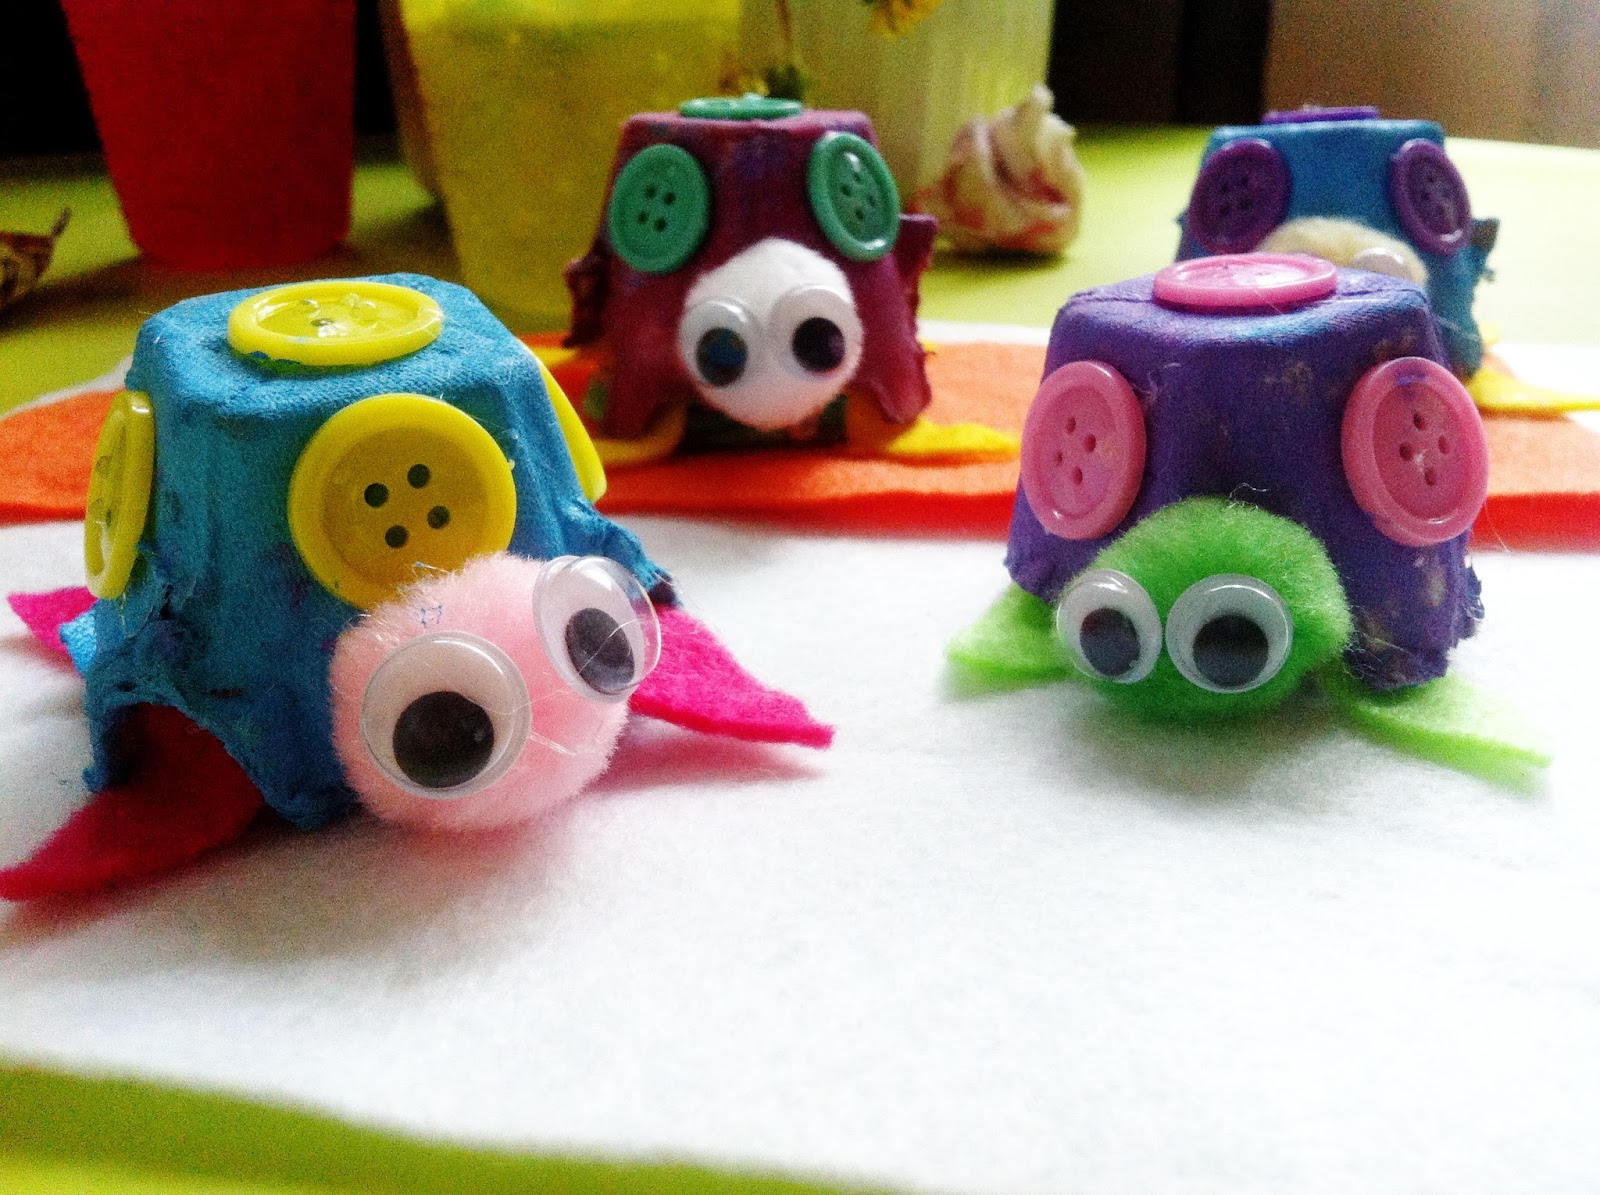 Egg carton craft ideas for kids art crafts projects for Cool art ideas for kids